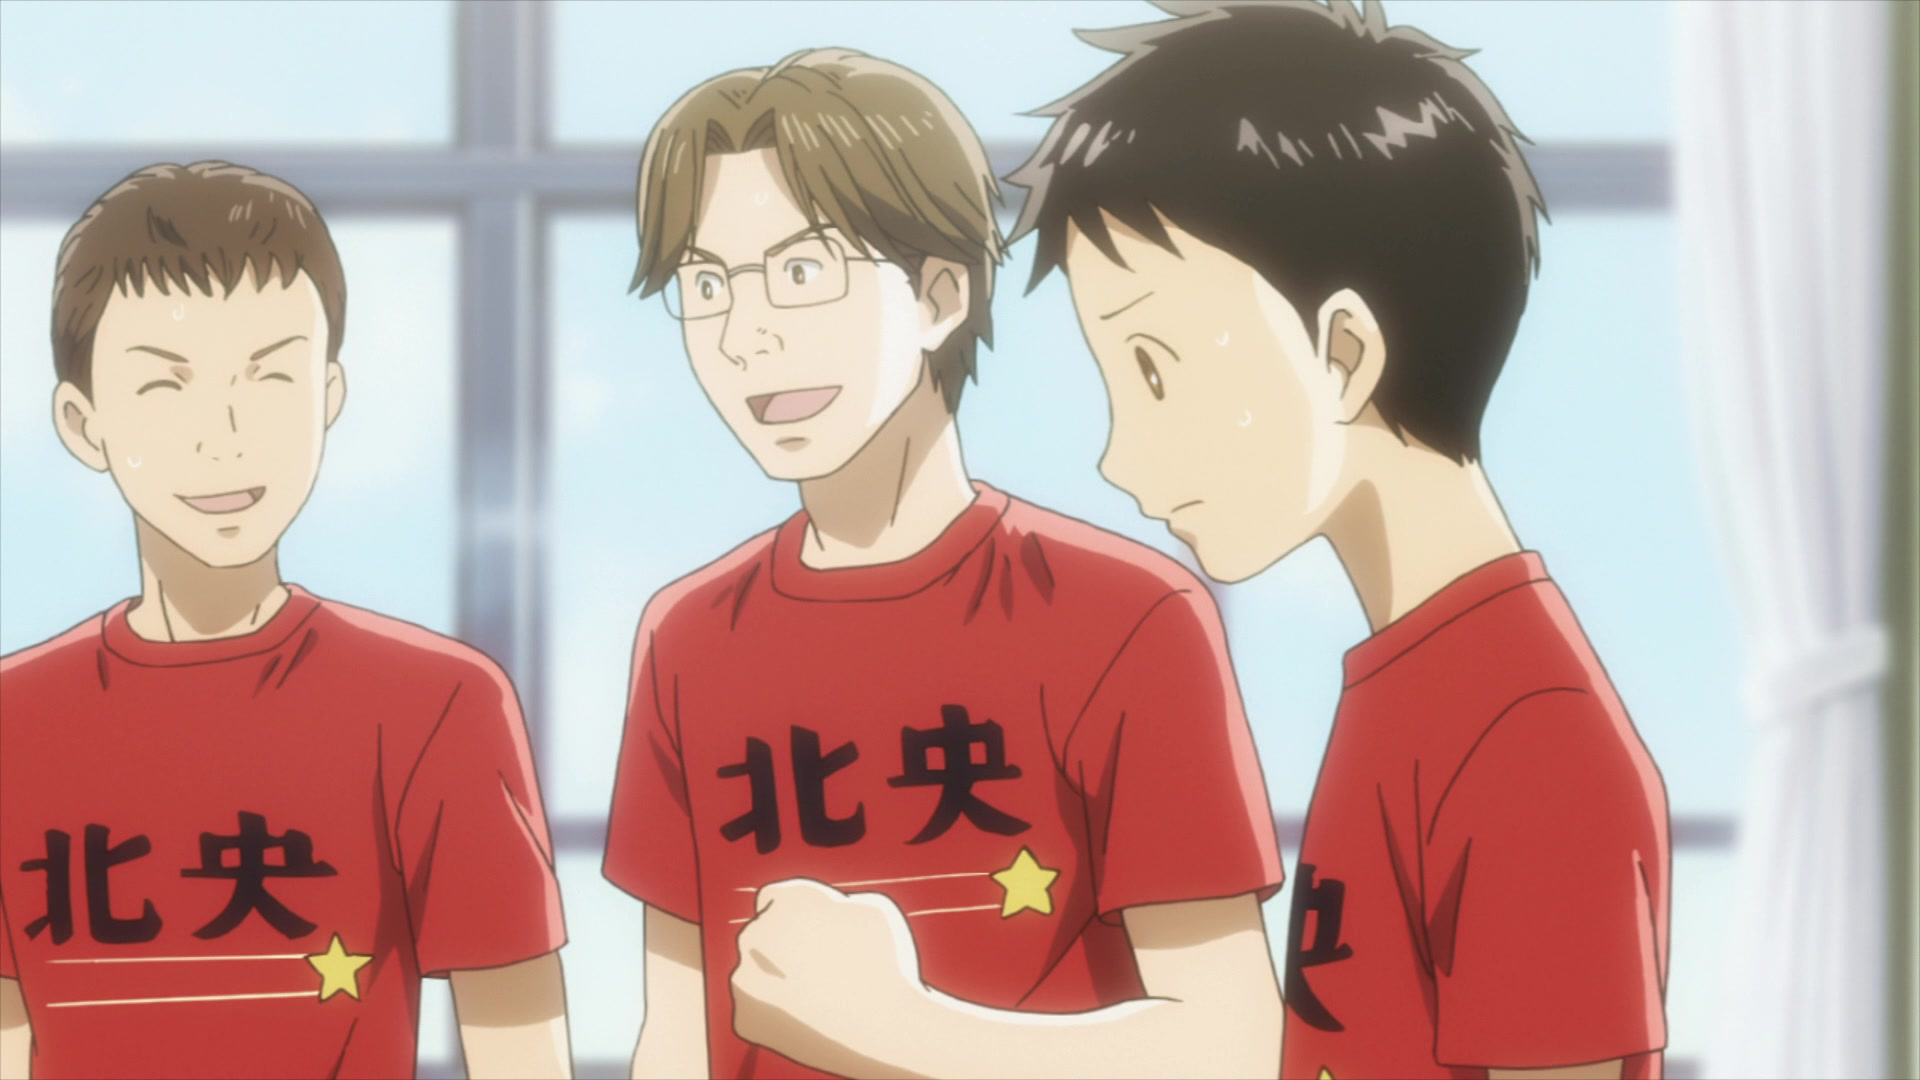 chihayafuru season 2 episode 6 animecrazy